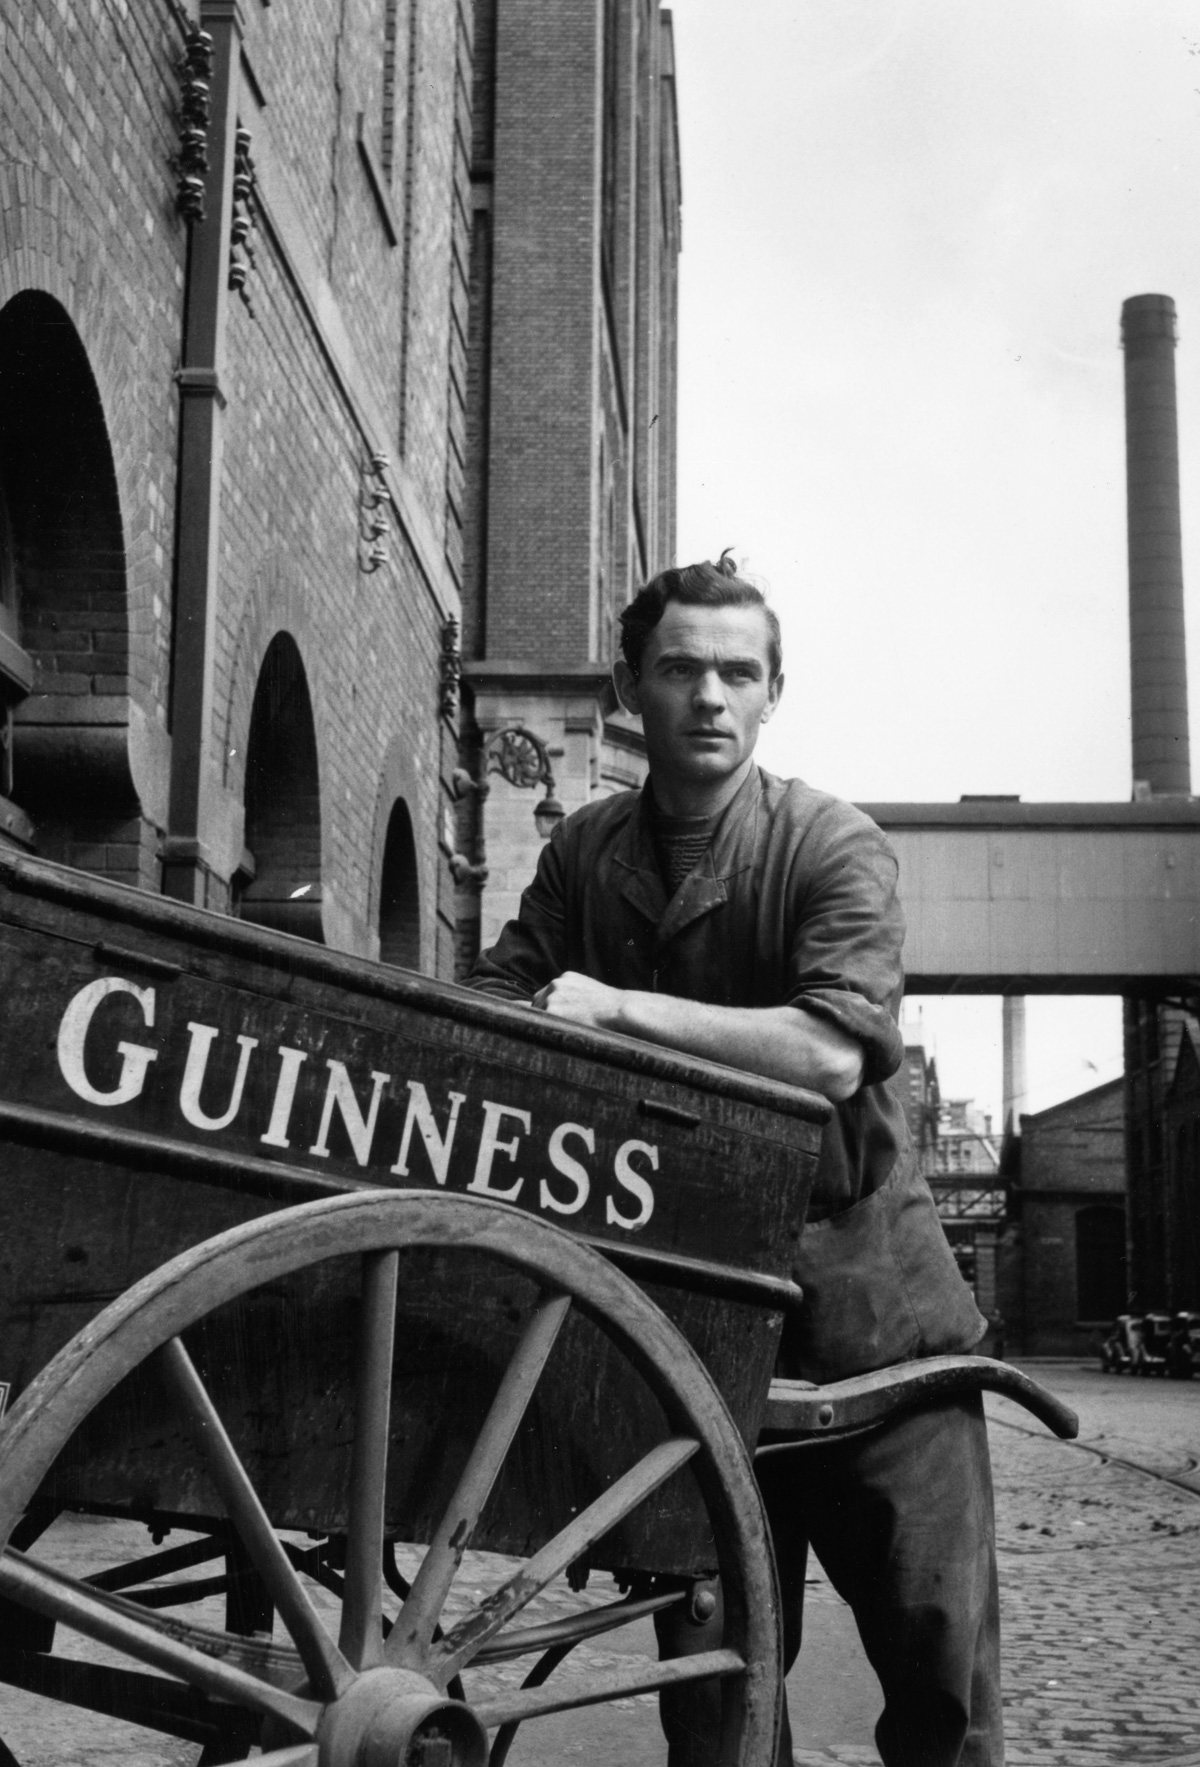 Mashable- 1953: Inside the Guinness brewery